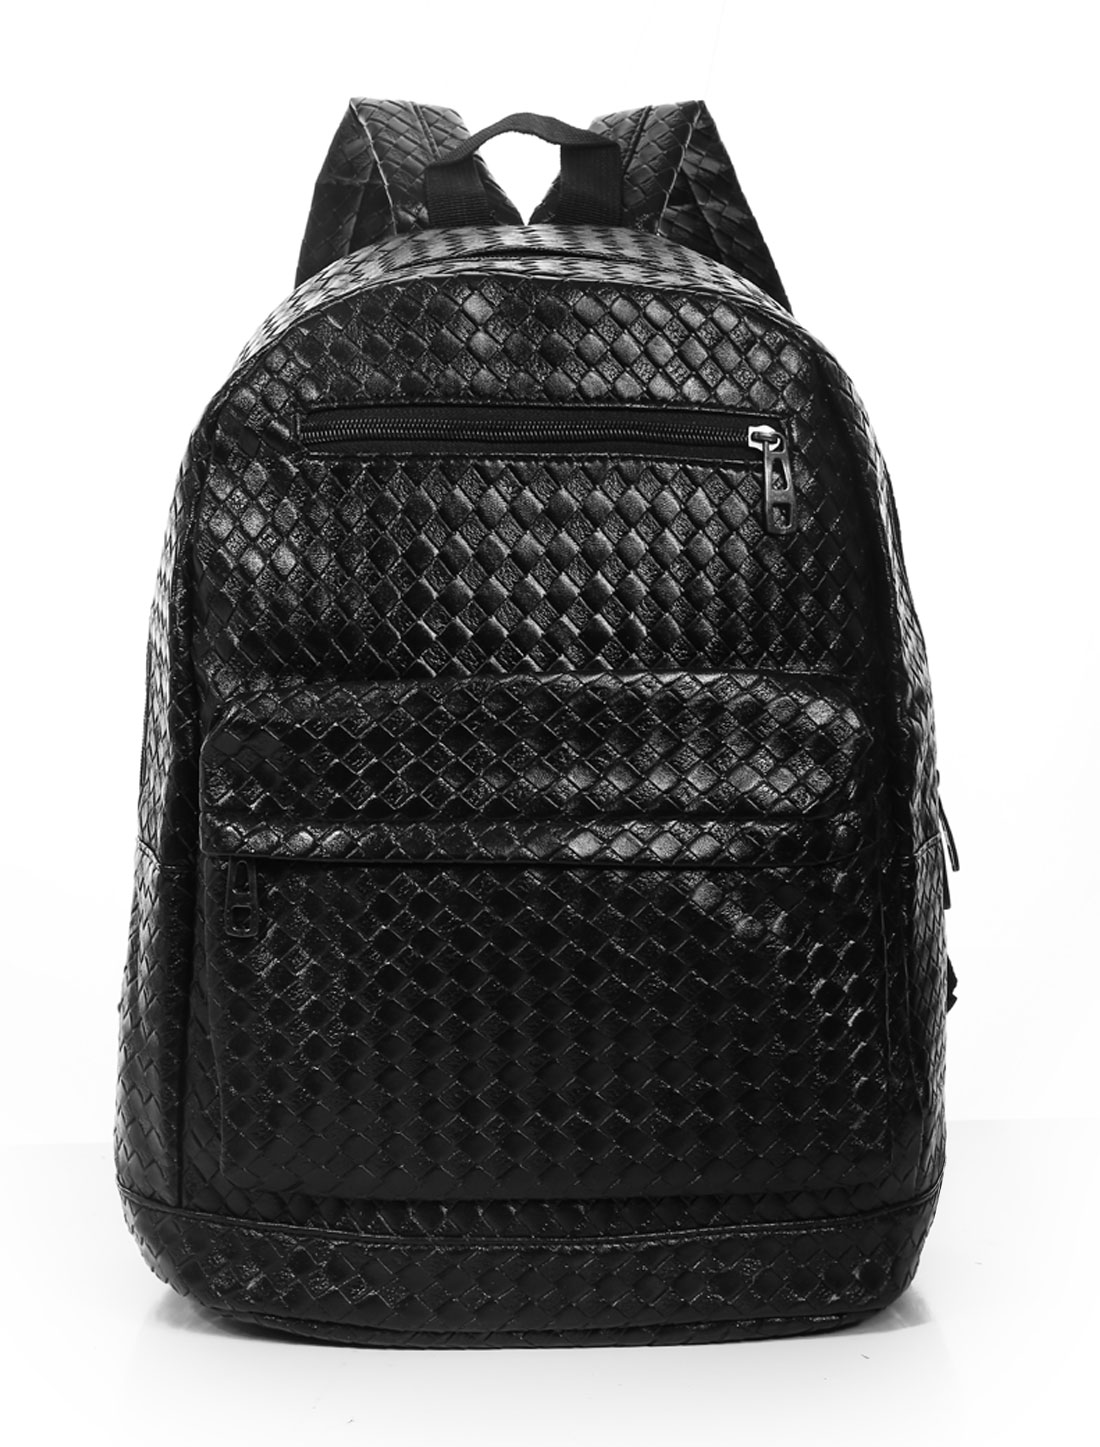 Men Intrecciato Daul Straps Zippered Textured Backpacks Black